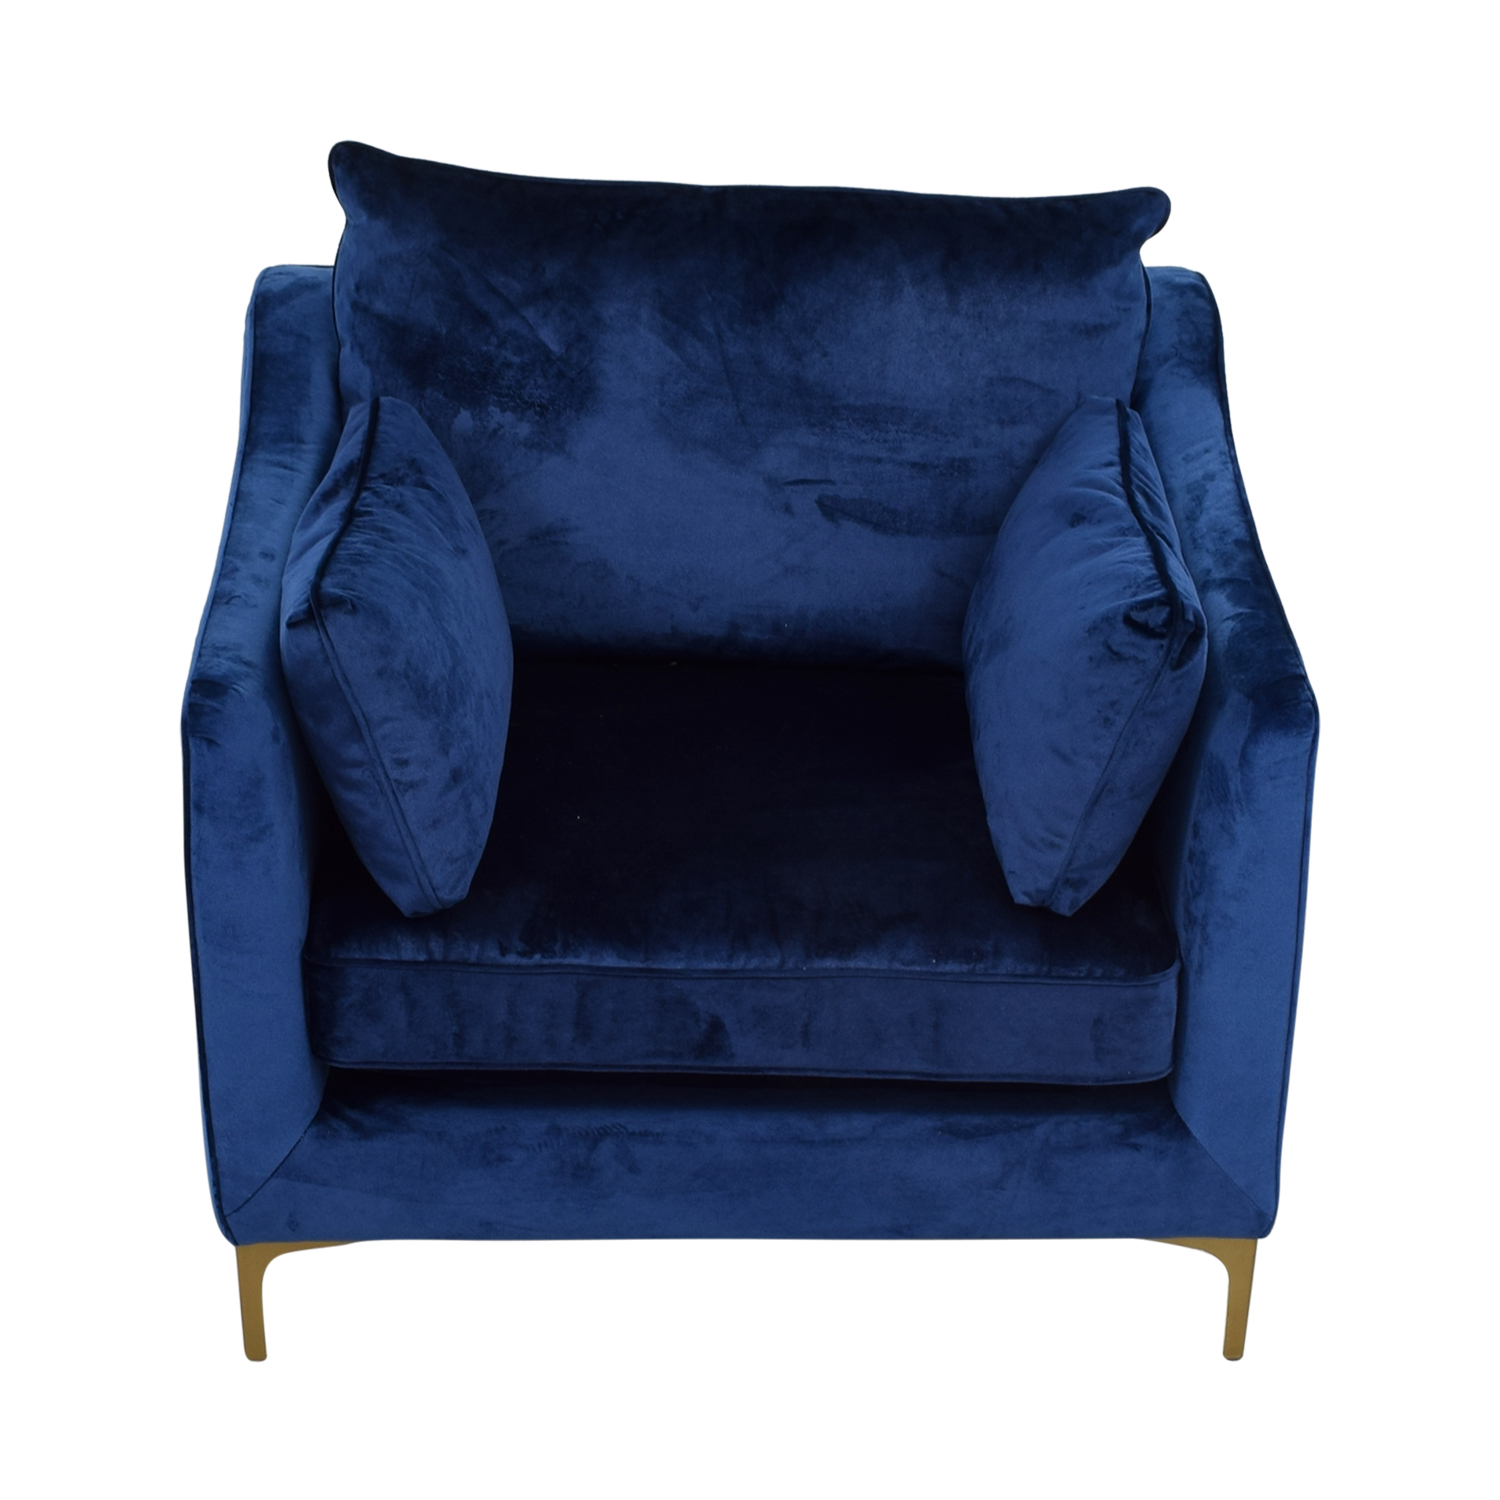 59 Off Mod Velvet Oxford Blue Accent Chair Chairs